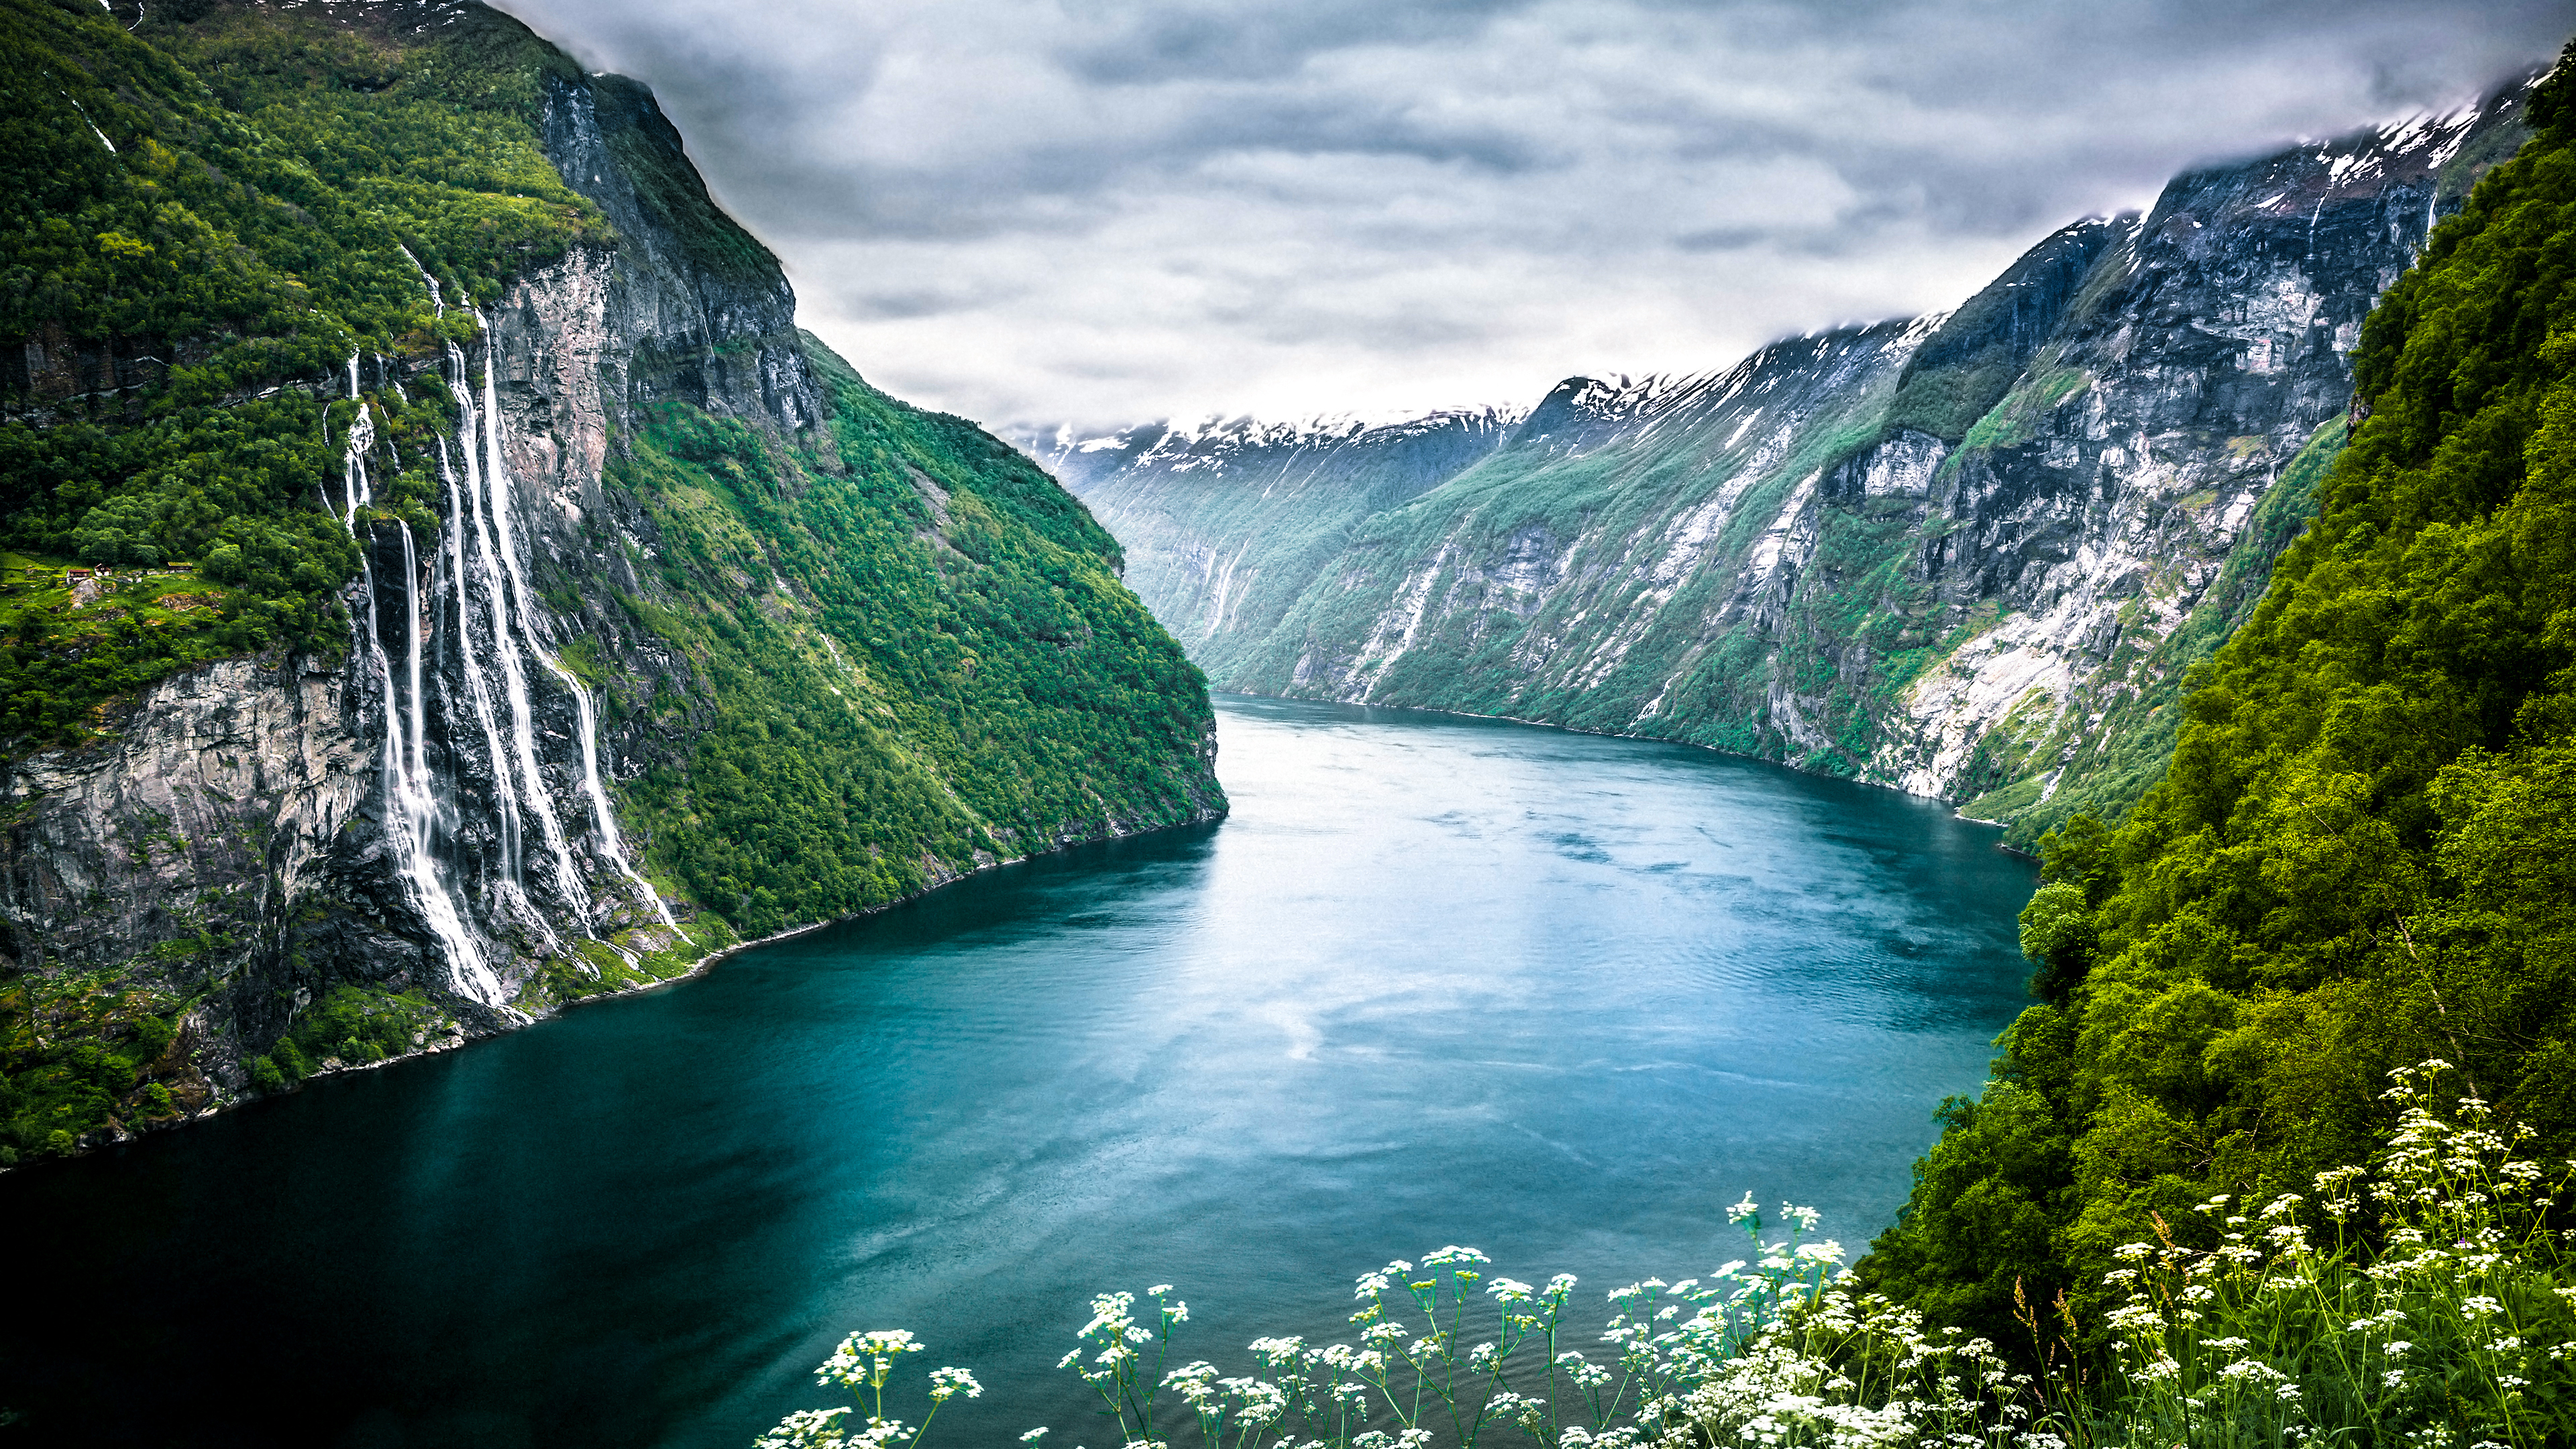 A cool view of a fjord